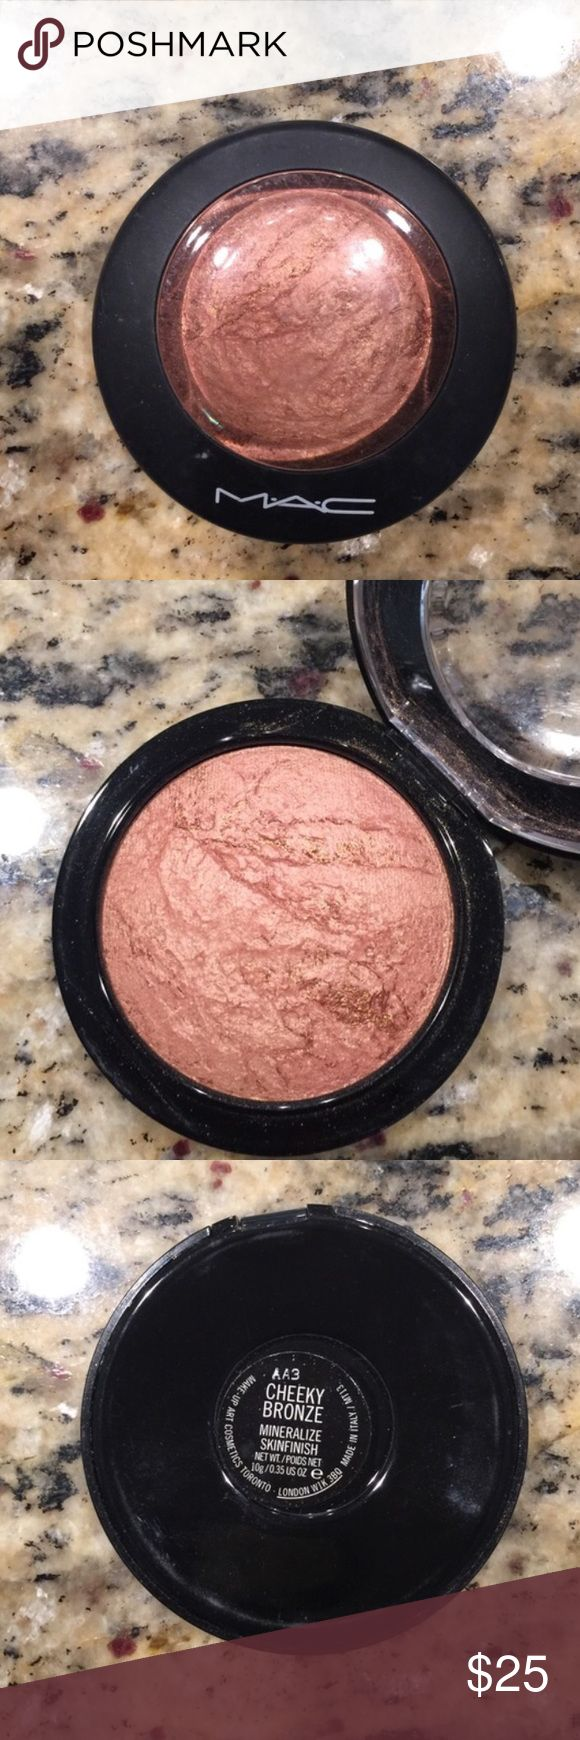 Mac Cheeky Bronze Swatched 3xpeachy golden highlighter MAC Cosmetics Makeup Face Powder